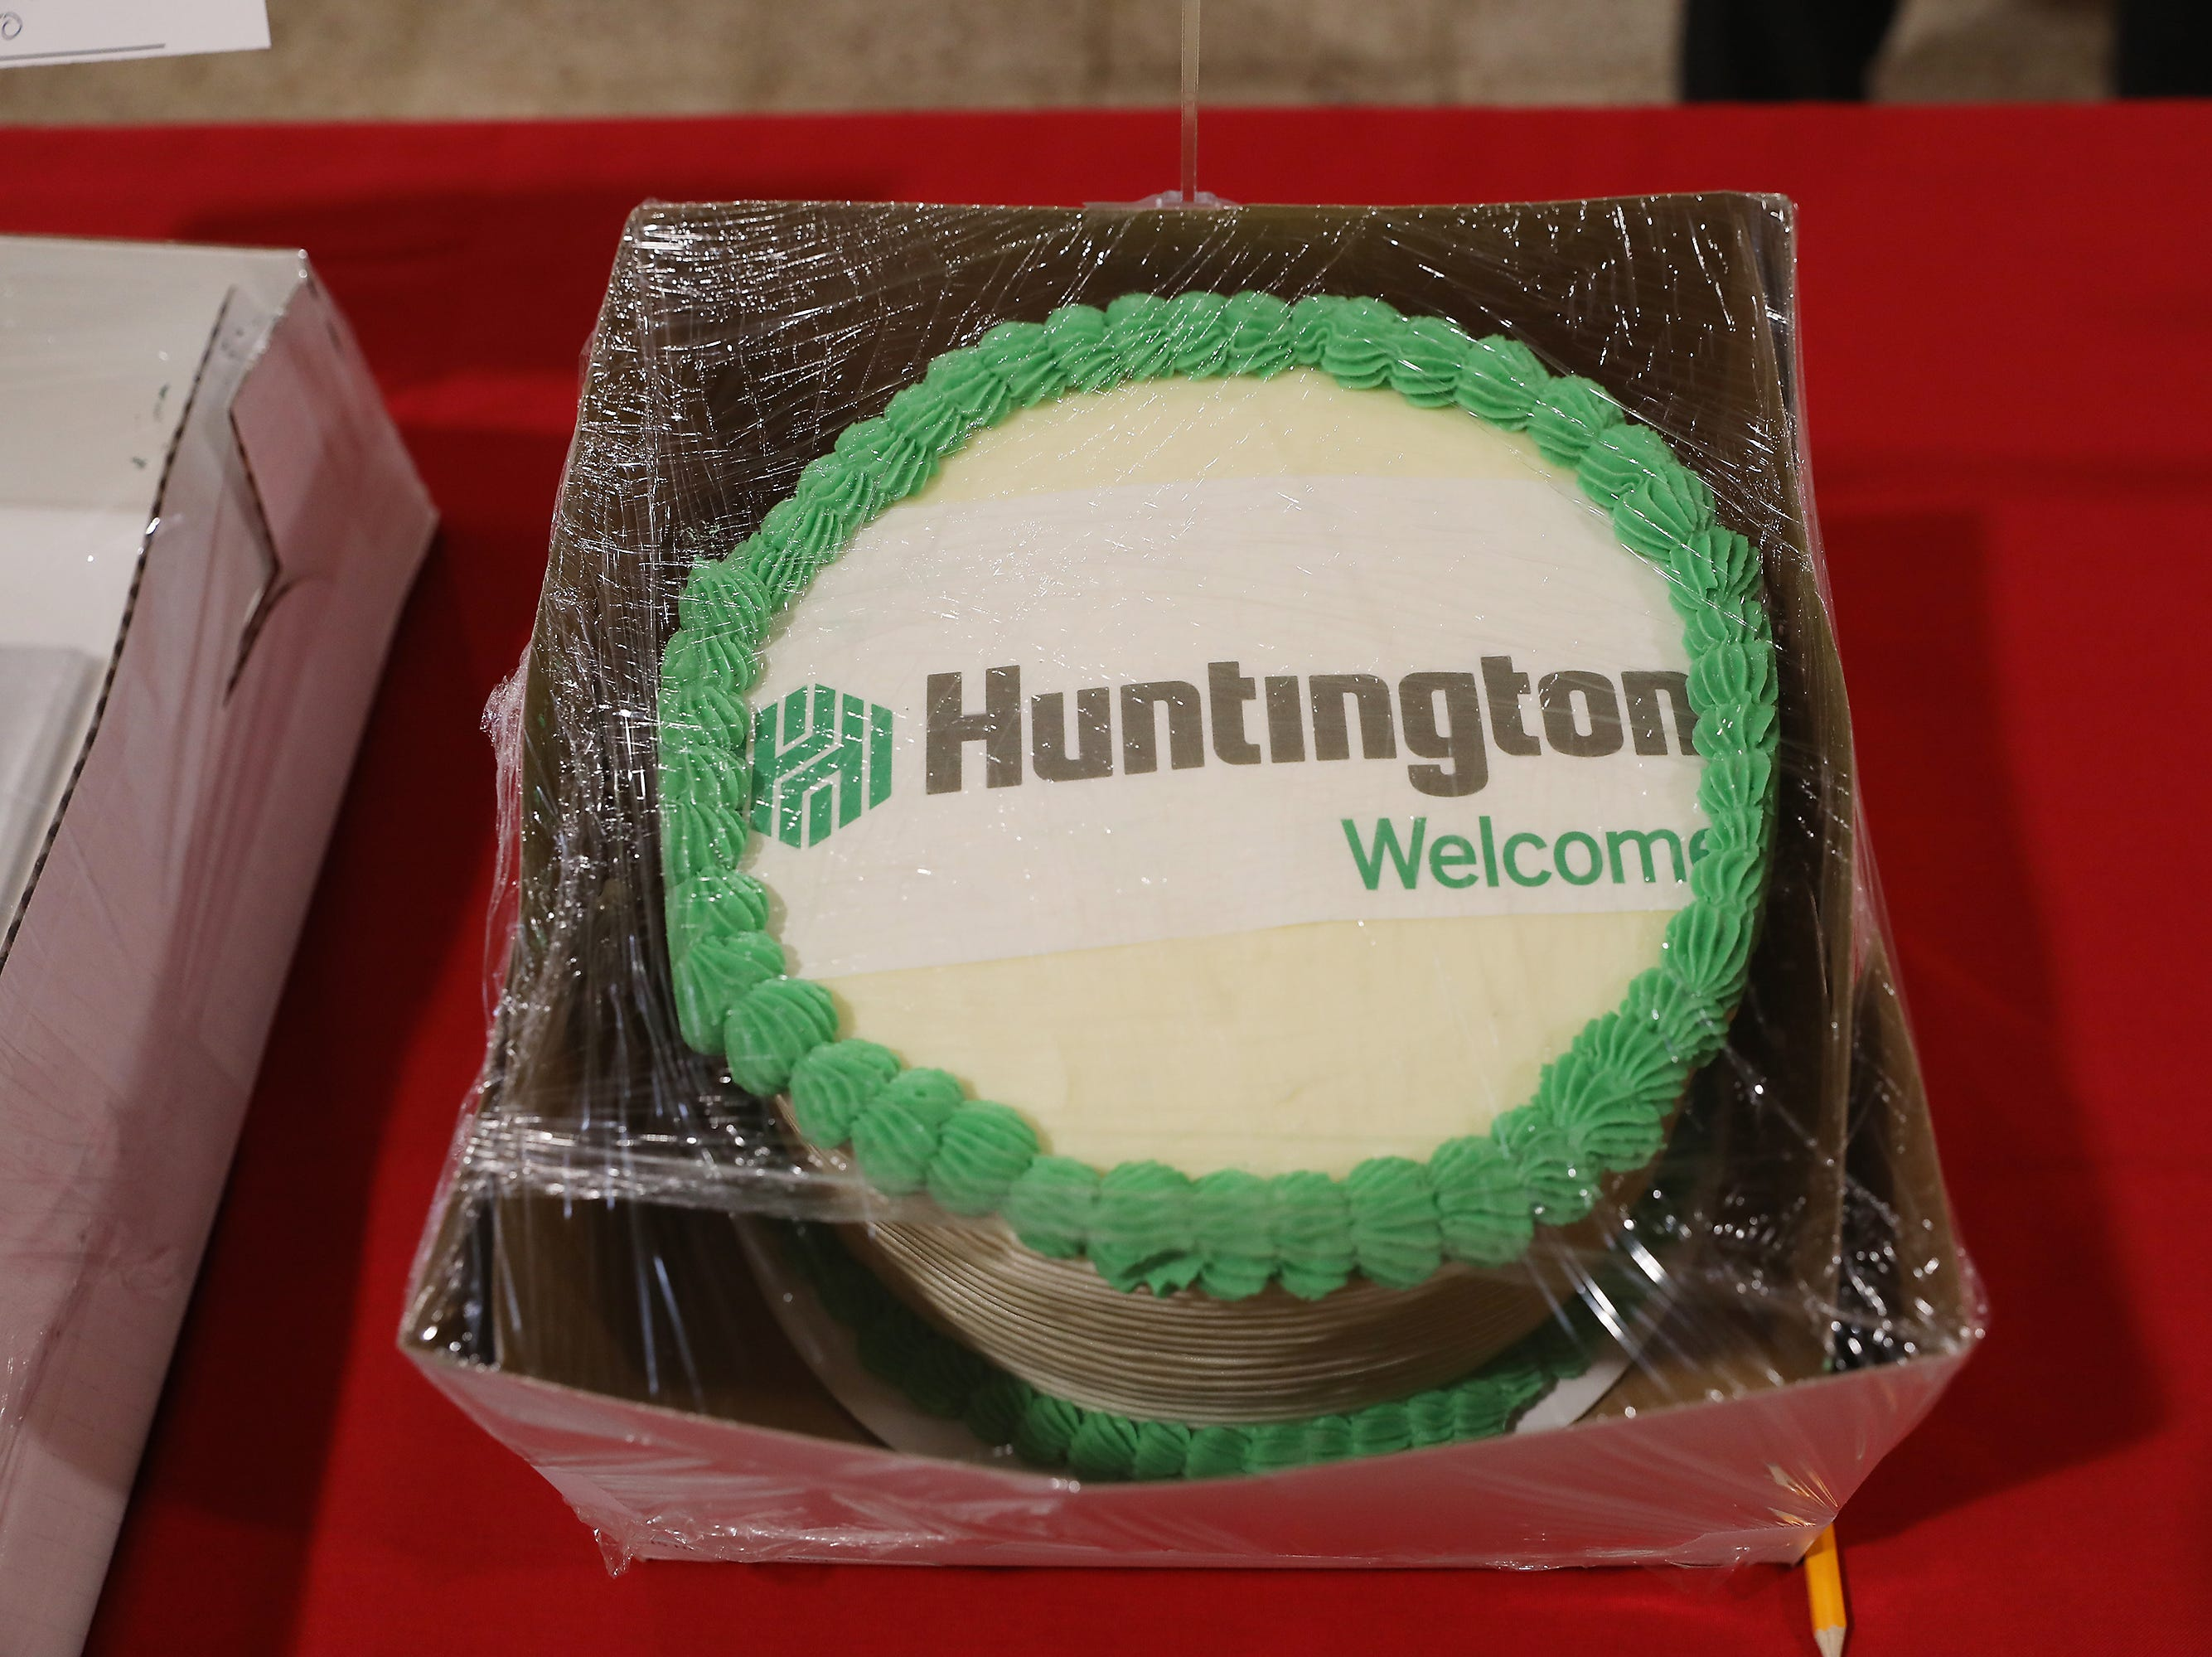 9:45 A.M. Friday cake 245 Huntington Bank - family pass to the Dresden Pool; $300